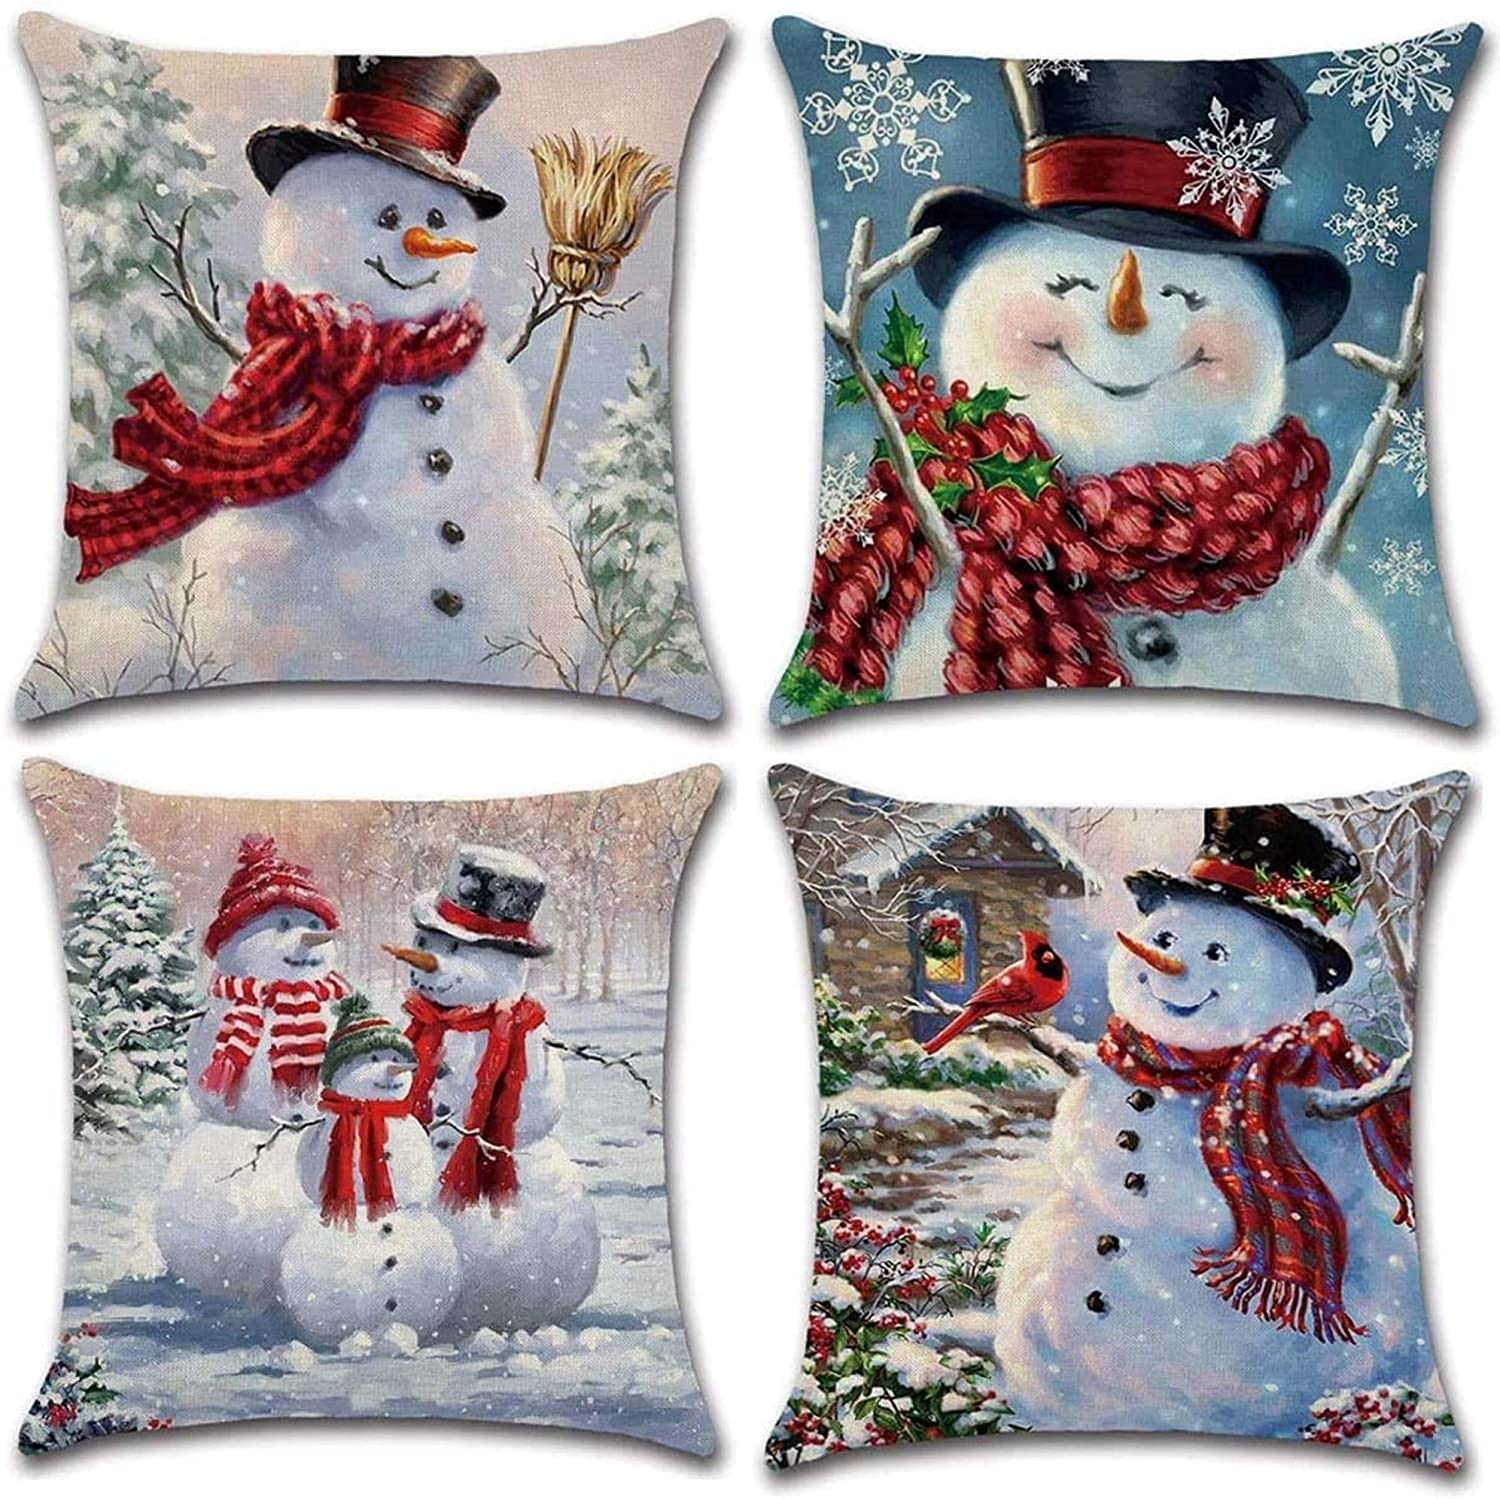 sutucom Christmas Pillowcase 18 x 18 Inches Pillow Covers Set of 4 - Xmas Series Cushion Cover Case Pillow Custom Zippered Square Pillowcase